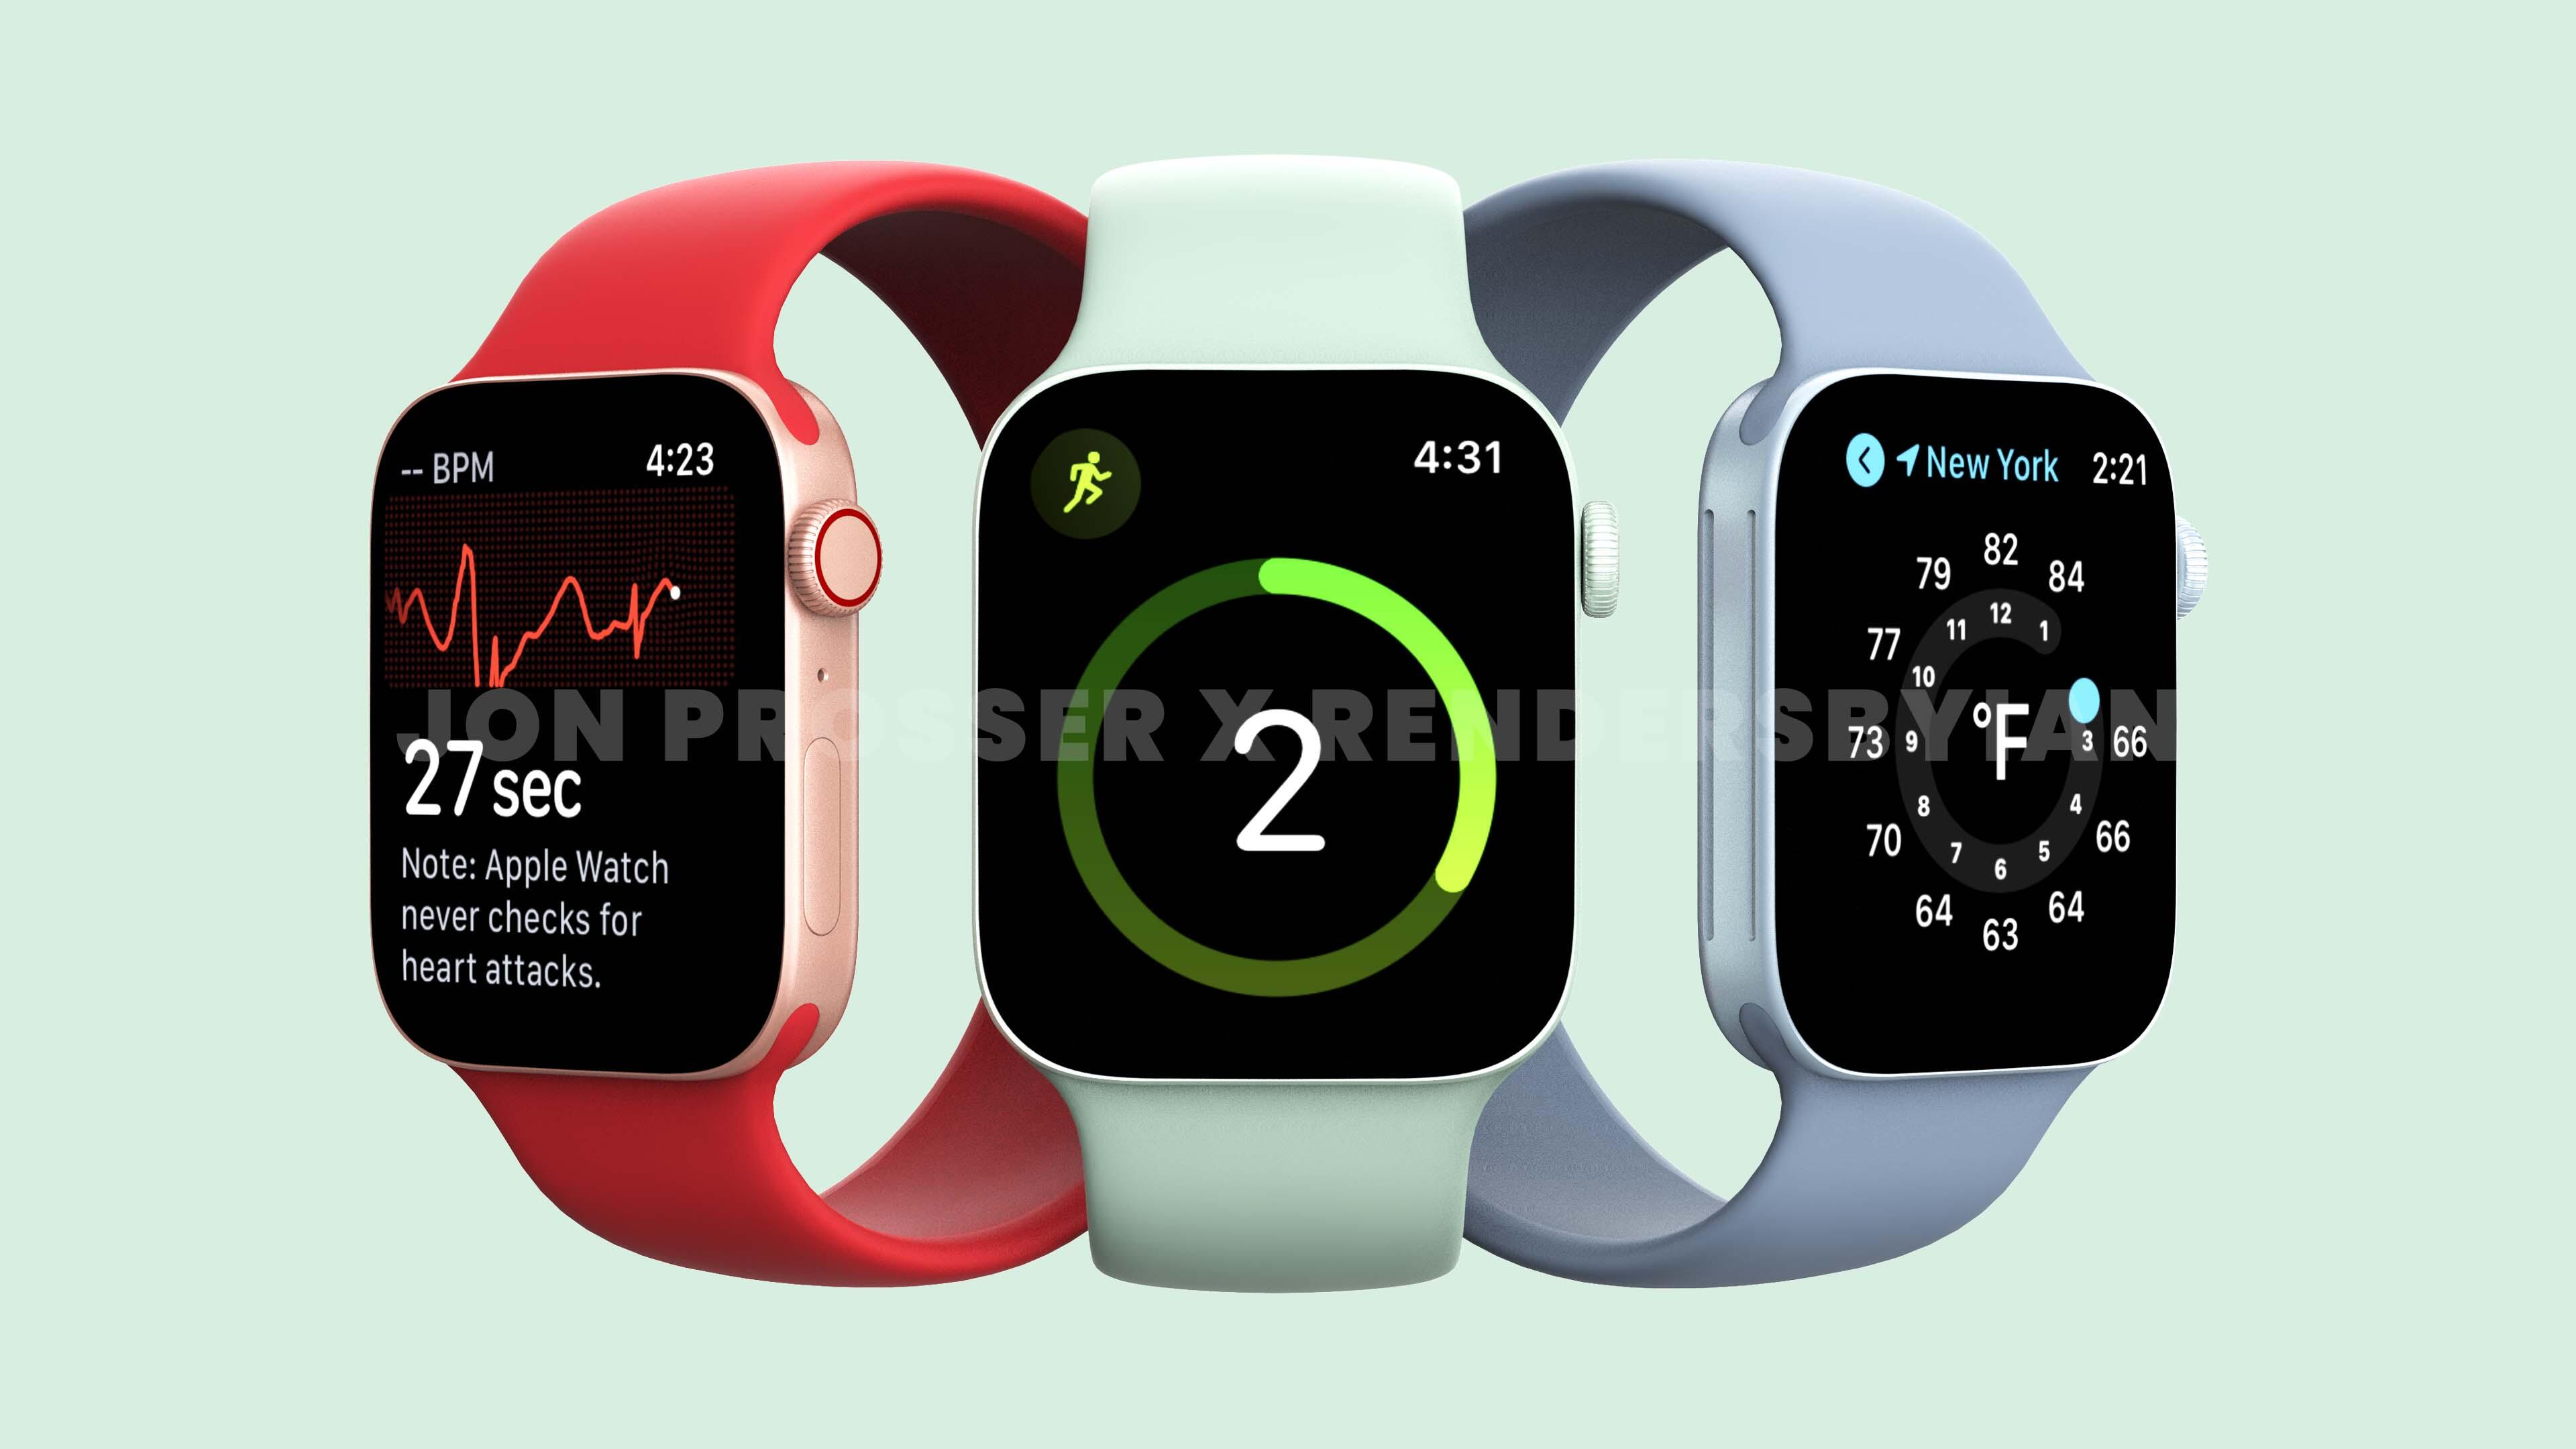 Apple Watch 7 rumors: Release date, price, possible new sleek design and more     - CNET